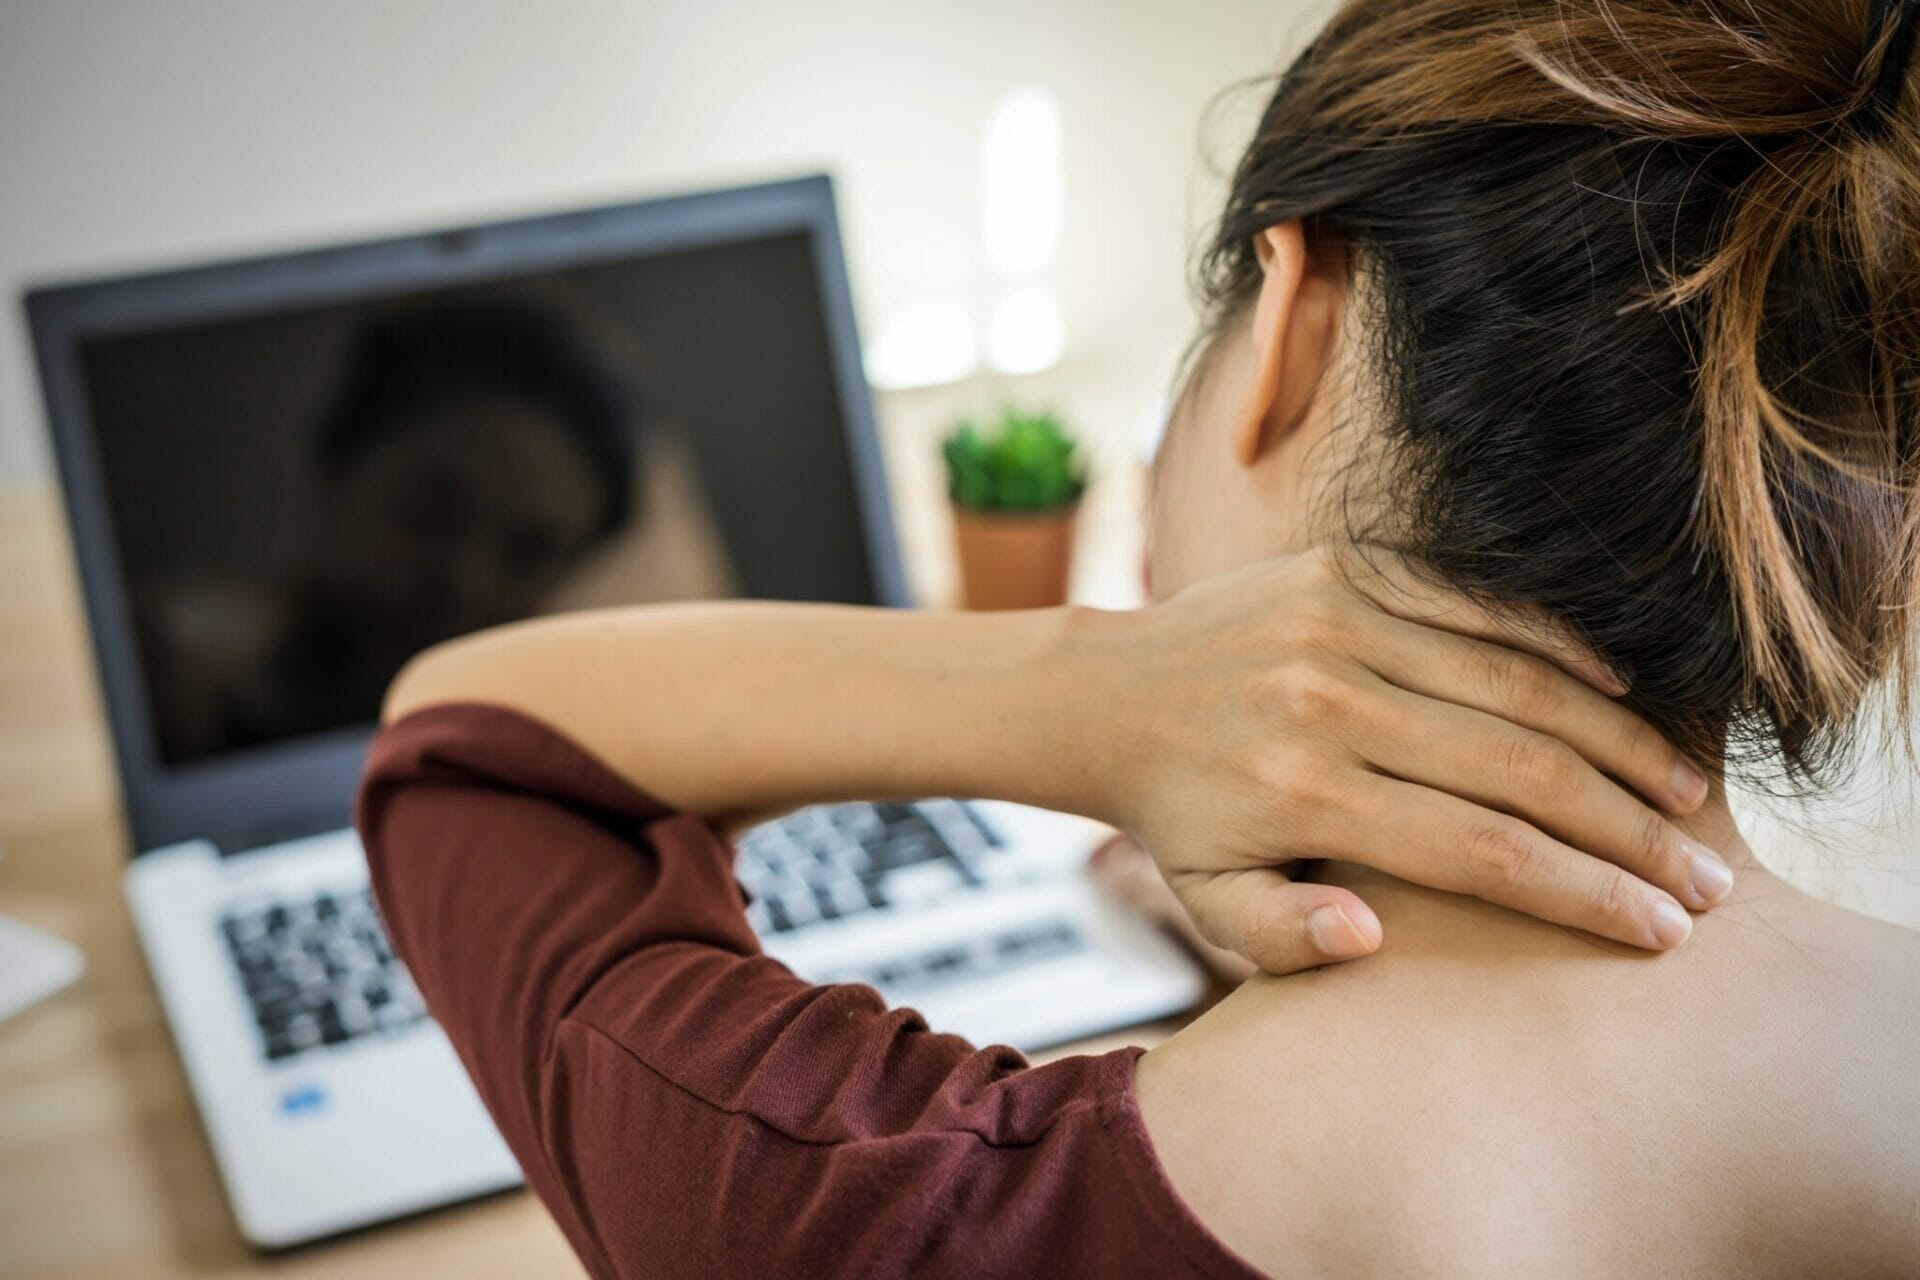 Exercises to help neck pain